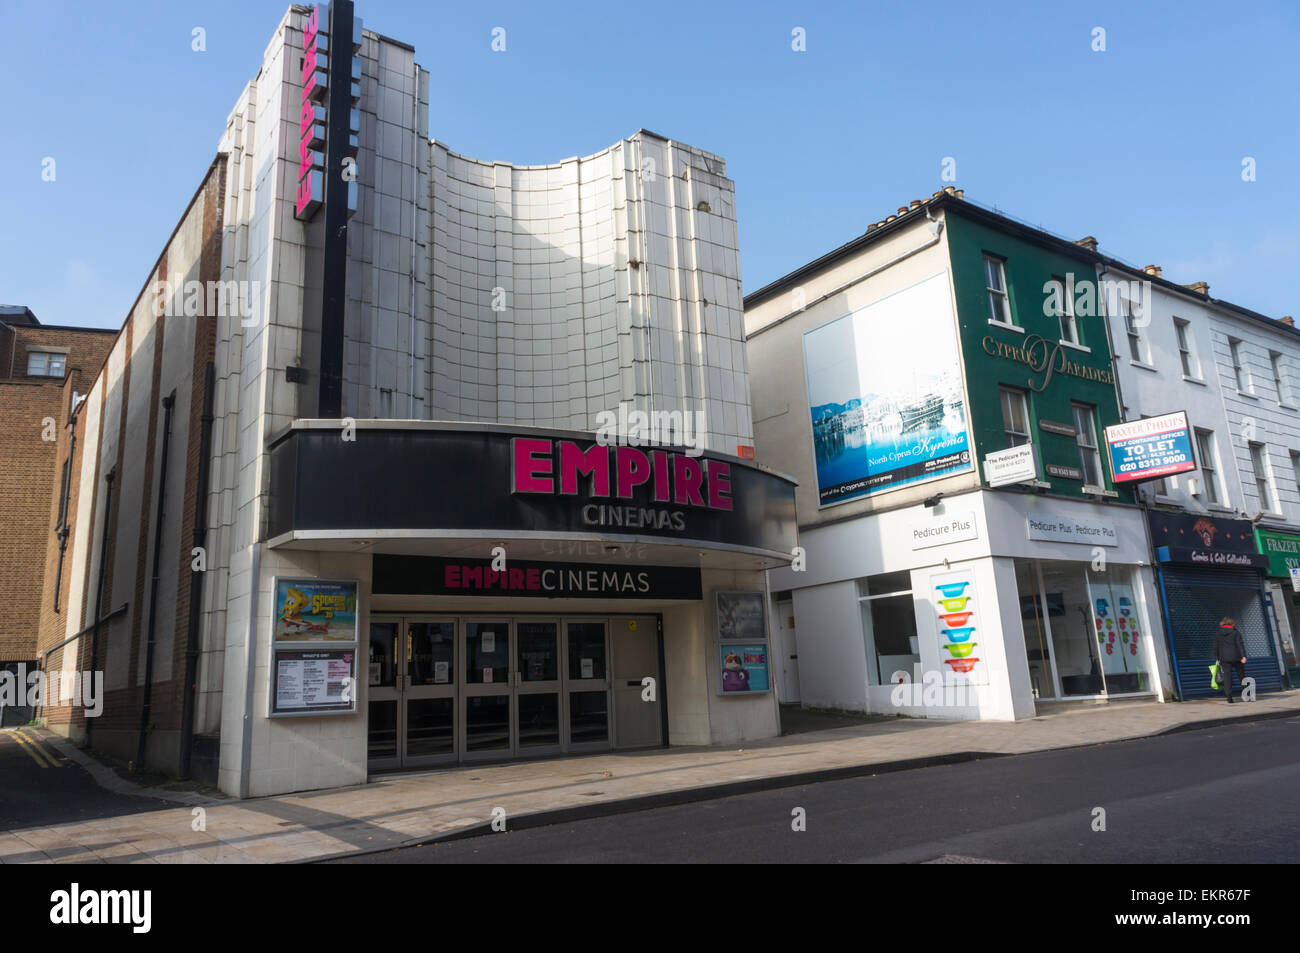 The Empire Cinema in Bromley, South London - Stock Image